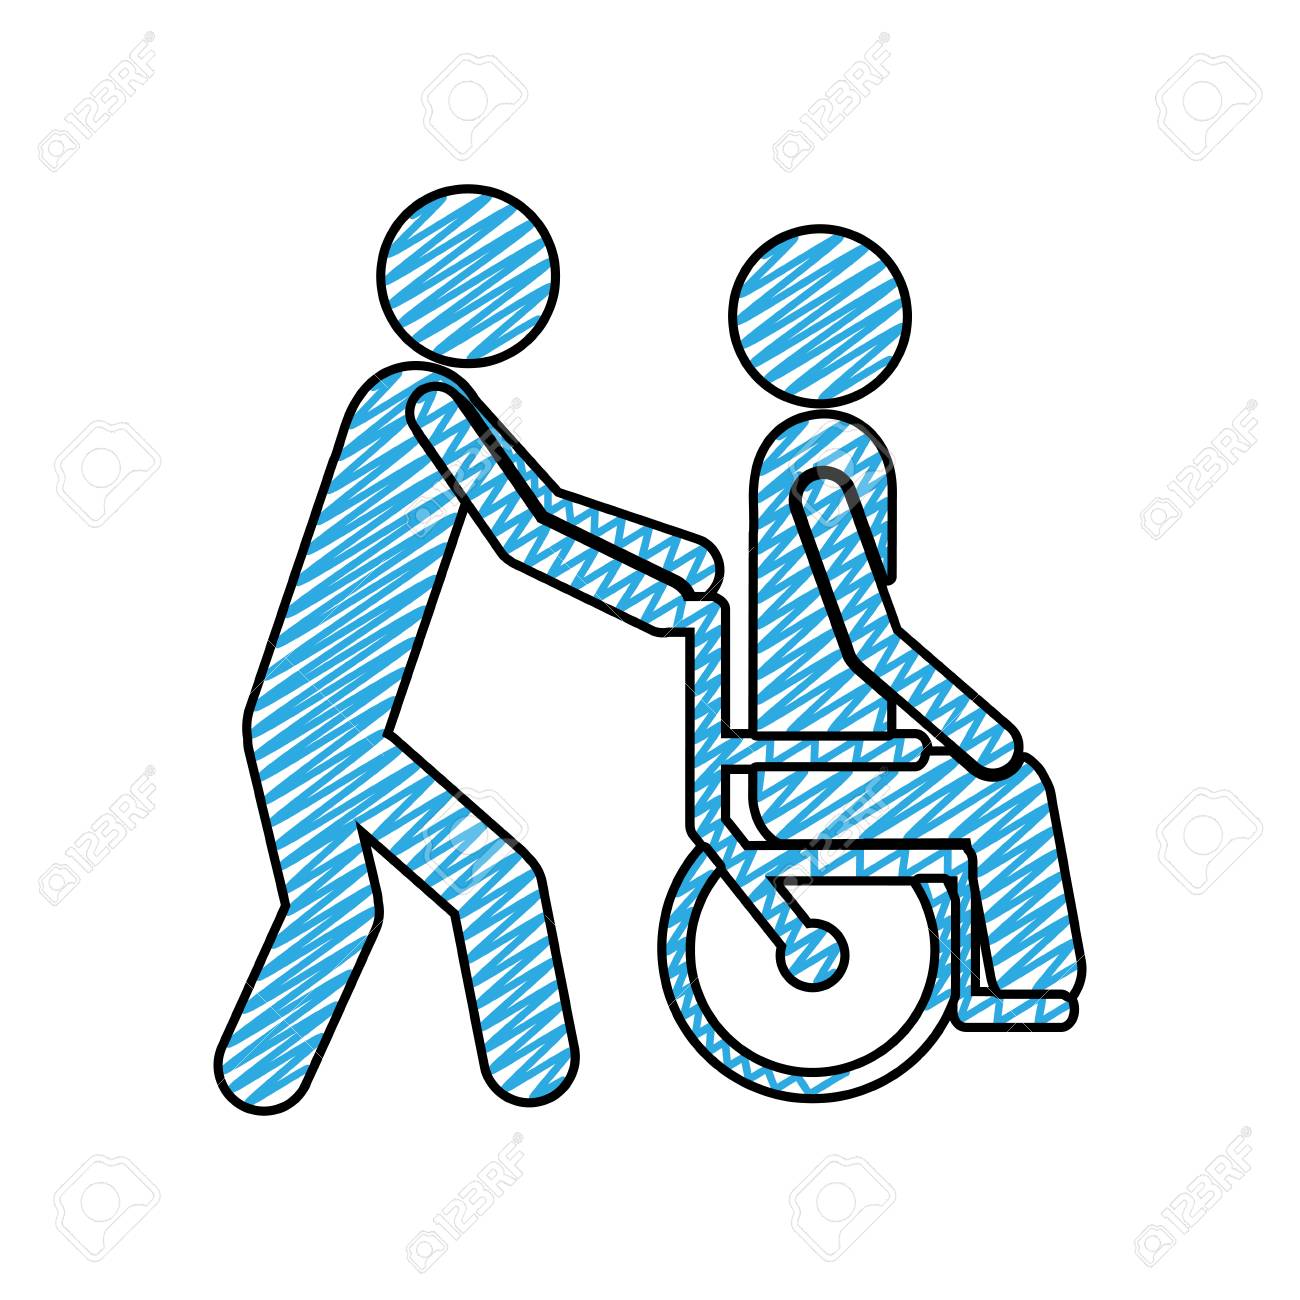 1300x1300 Color Pencil Drawing Of Person Helping Another Push A Wheelchair